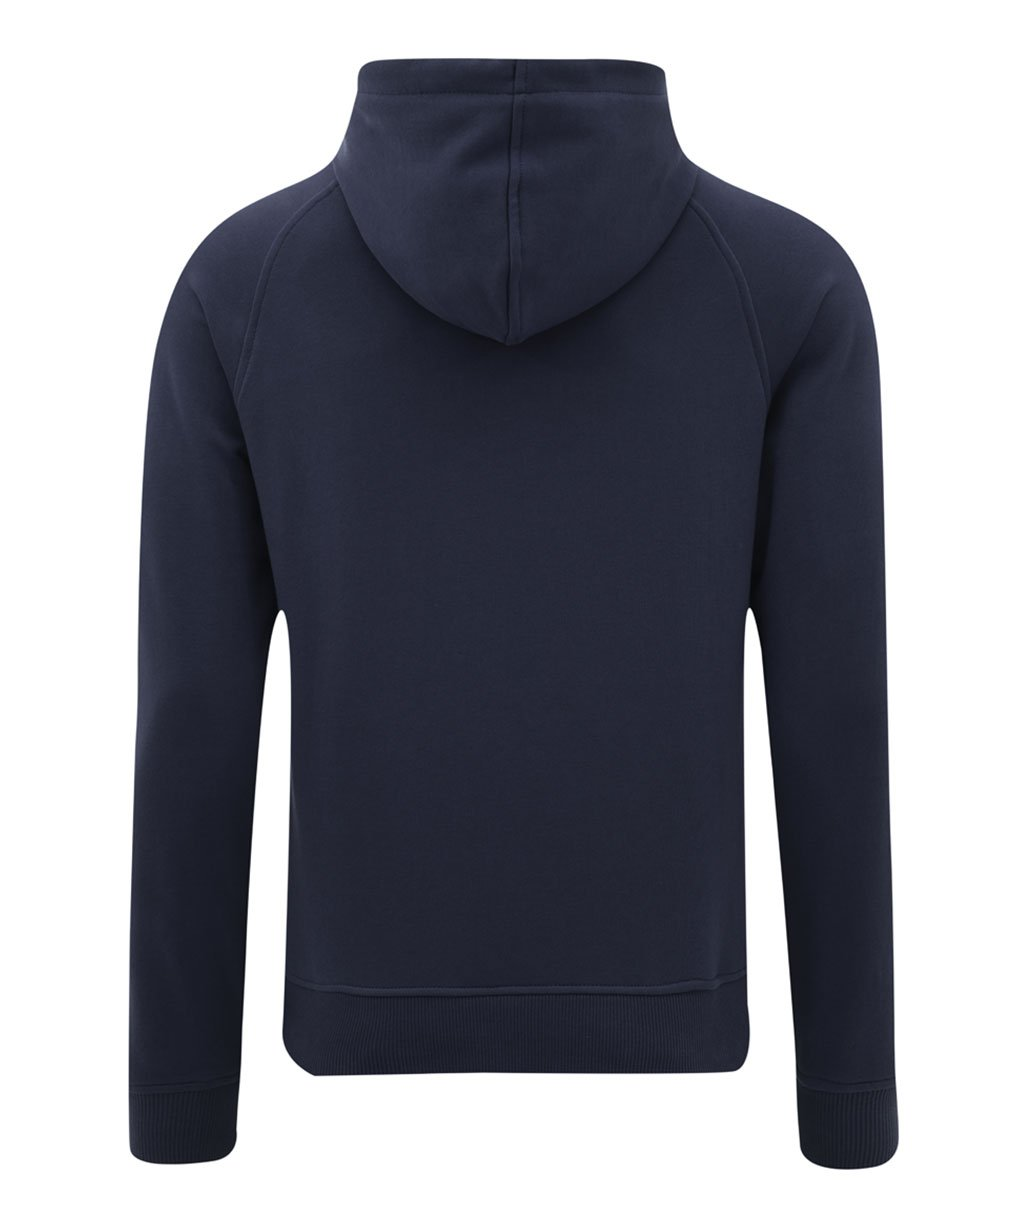 RFC Cotton Hoody - Navy/White